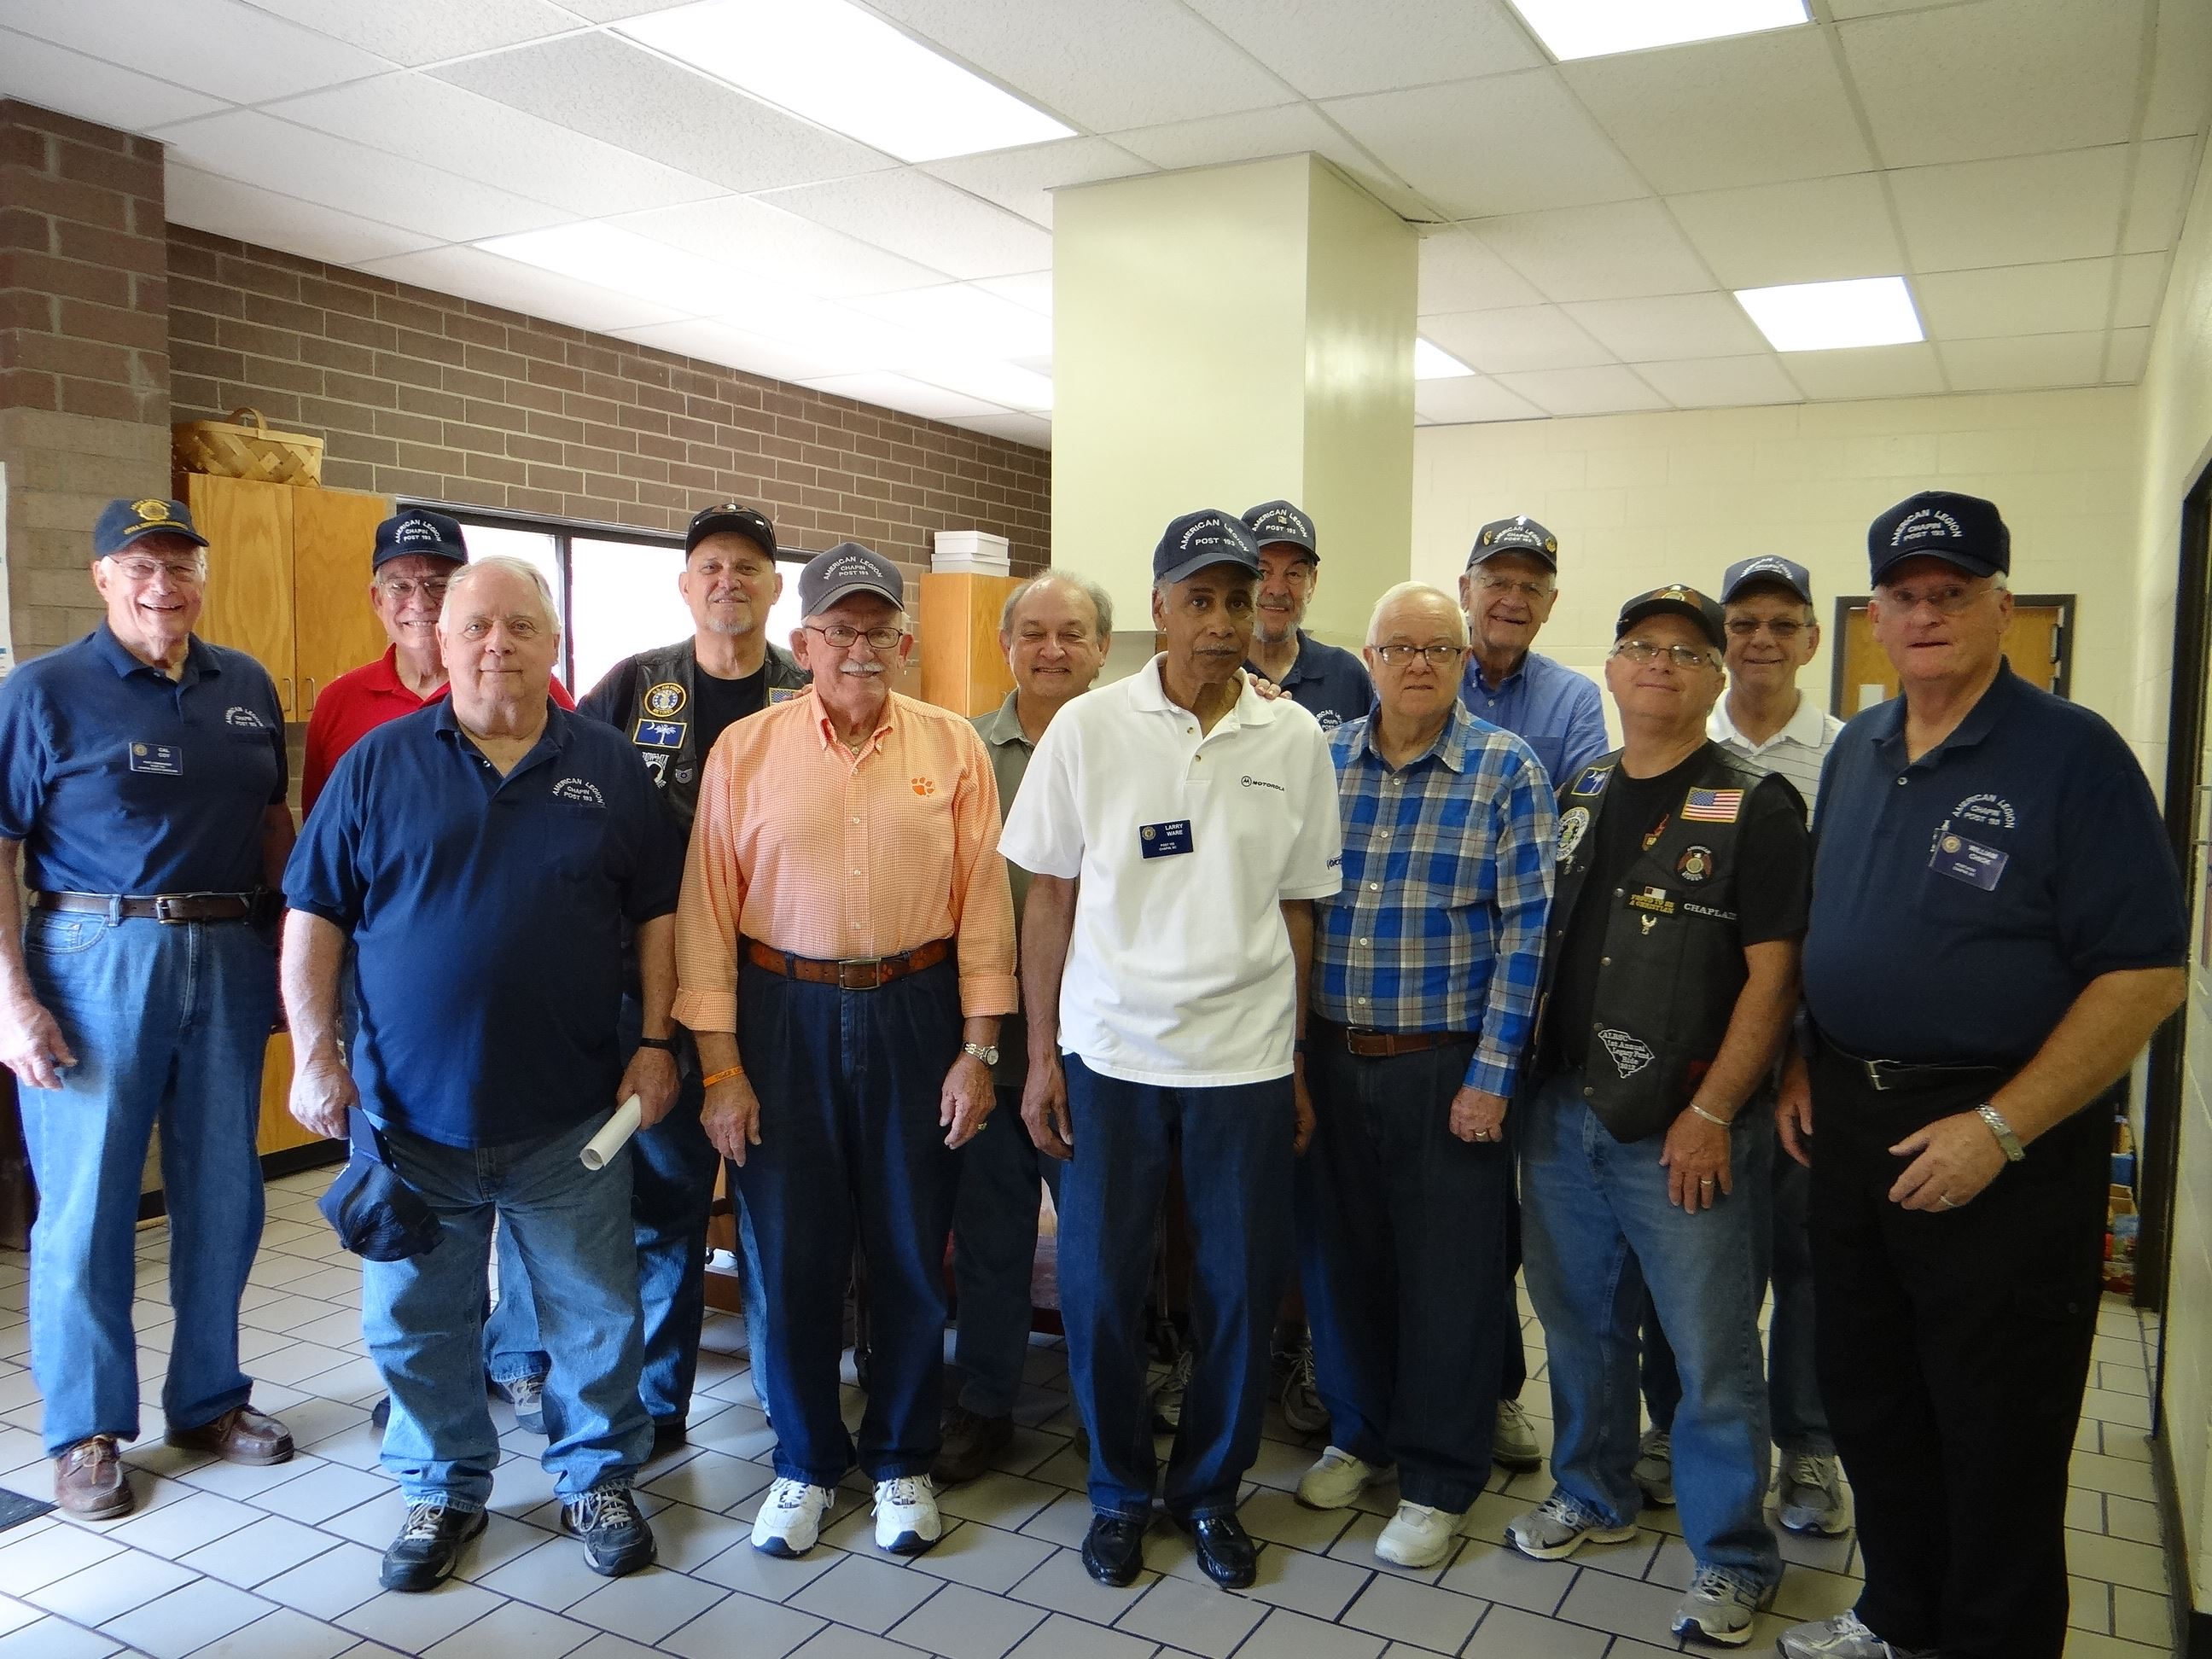 Group photo of post 193 members